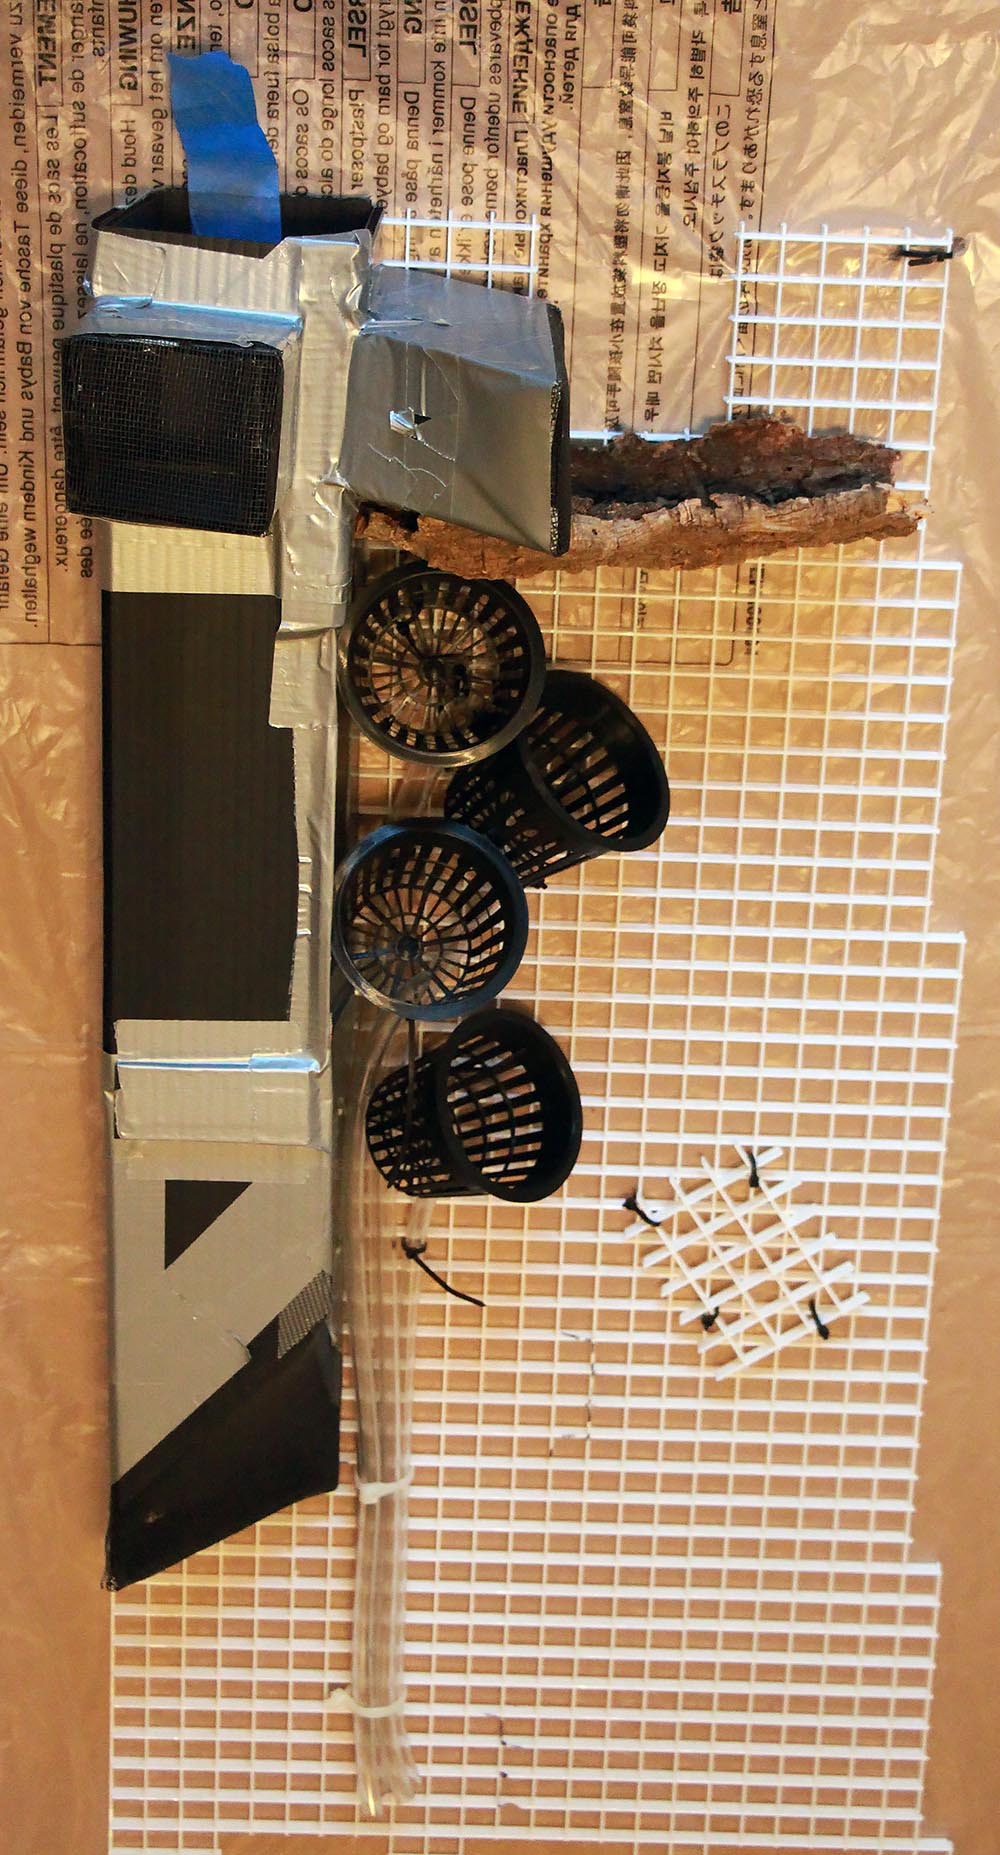 Orchids generally require air movement to prevent disease. This is a great look at the internal ductwork for internal air circulation, constructed out of corrugated plastic. Air is brought in underneath, then circulated by a computer fan and exhausted in two directions at the top. Also, note the pots which include draining tubes to bring excess water down to the substrate and eventually the water table underneath the false bottom.